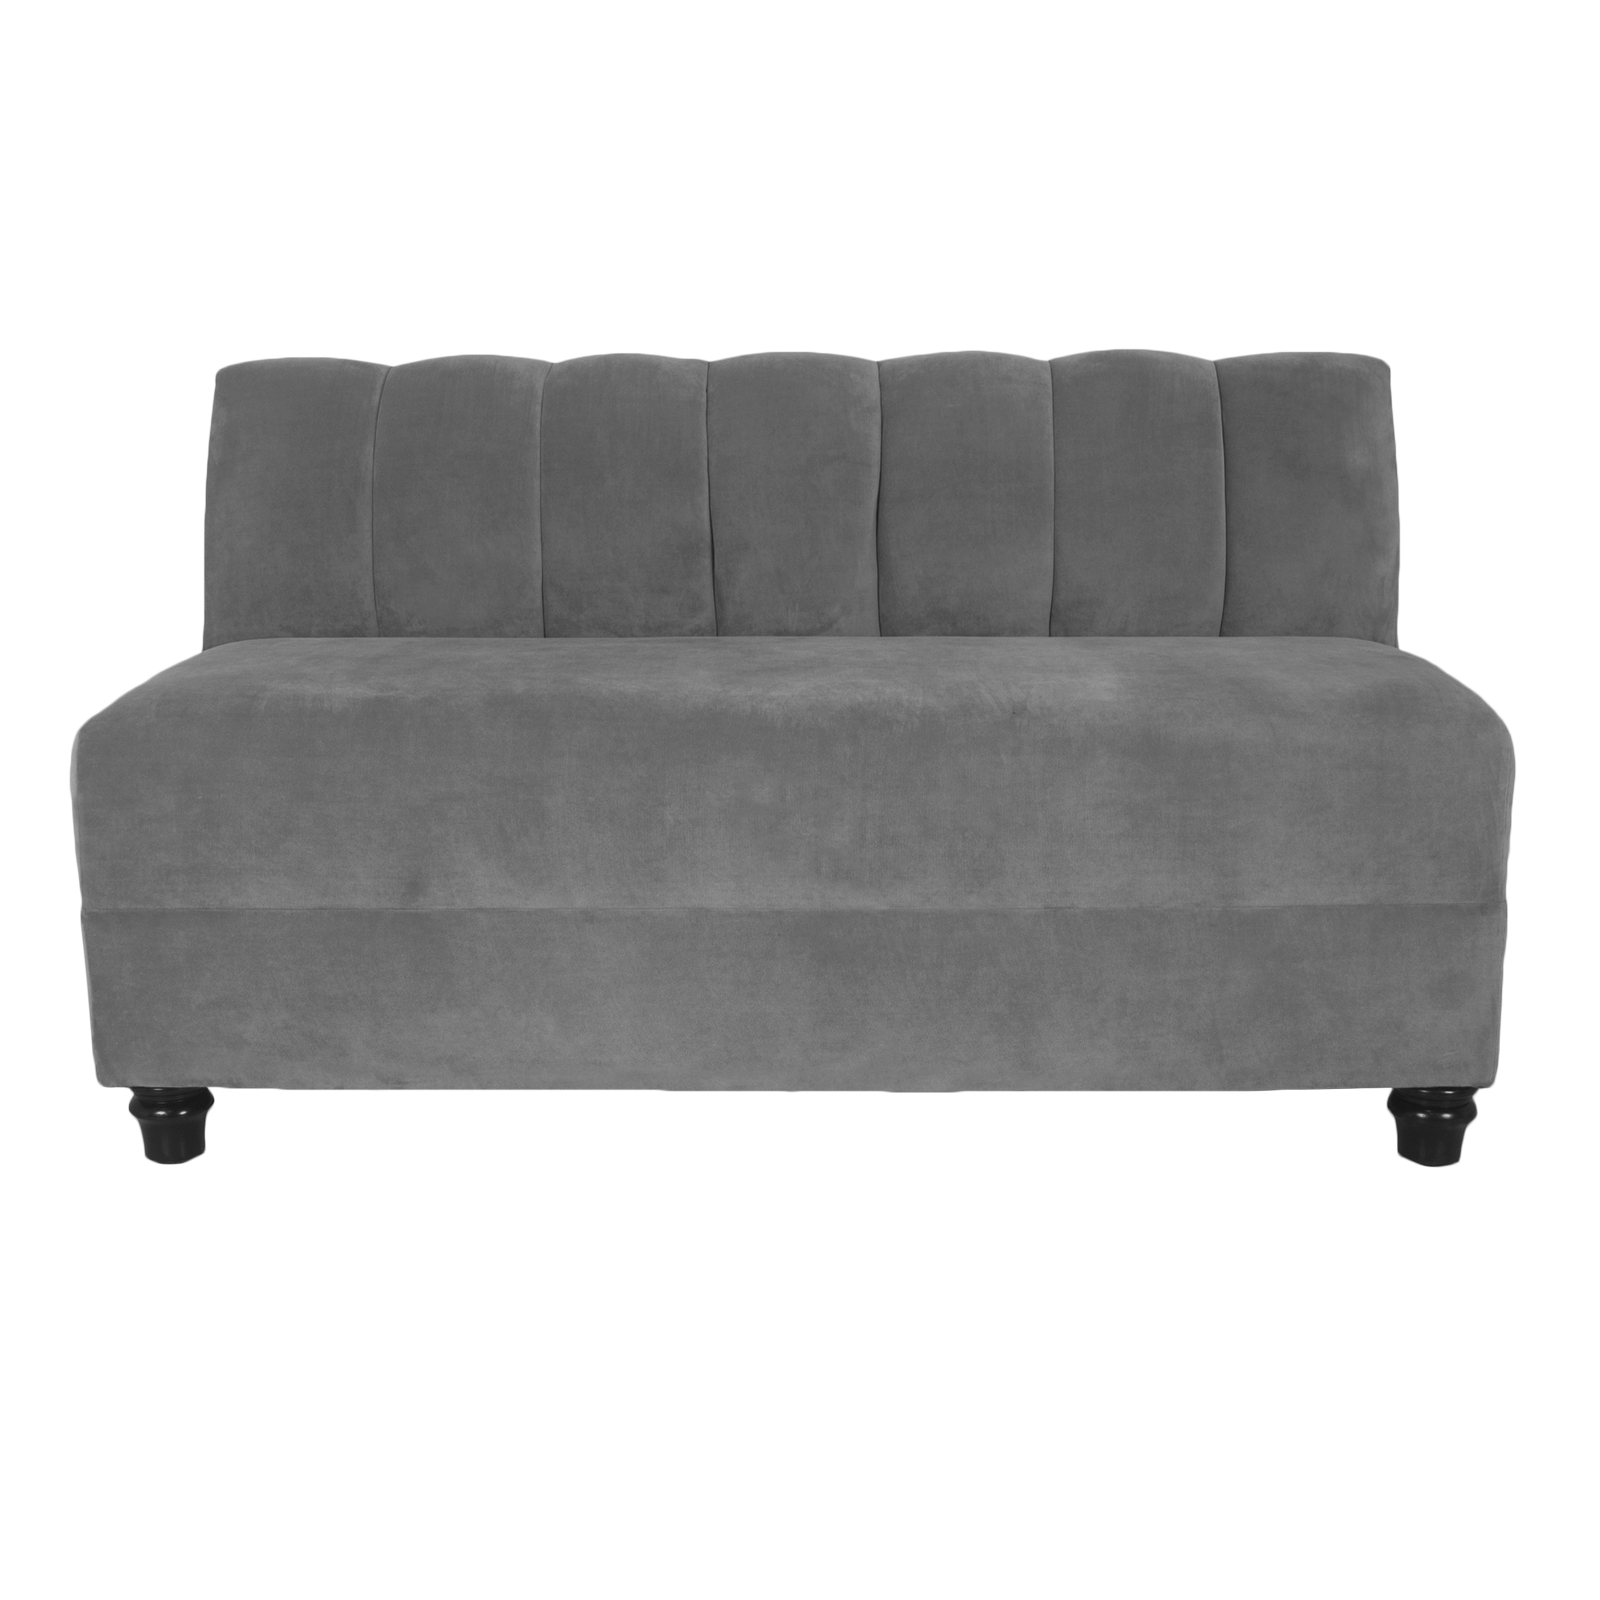 rental sofa muuto connect uk event rentals furniture delivery formdecor